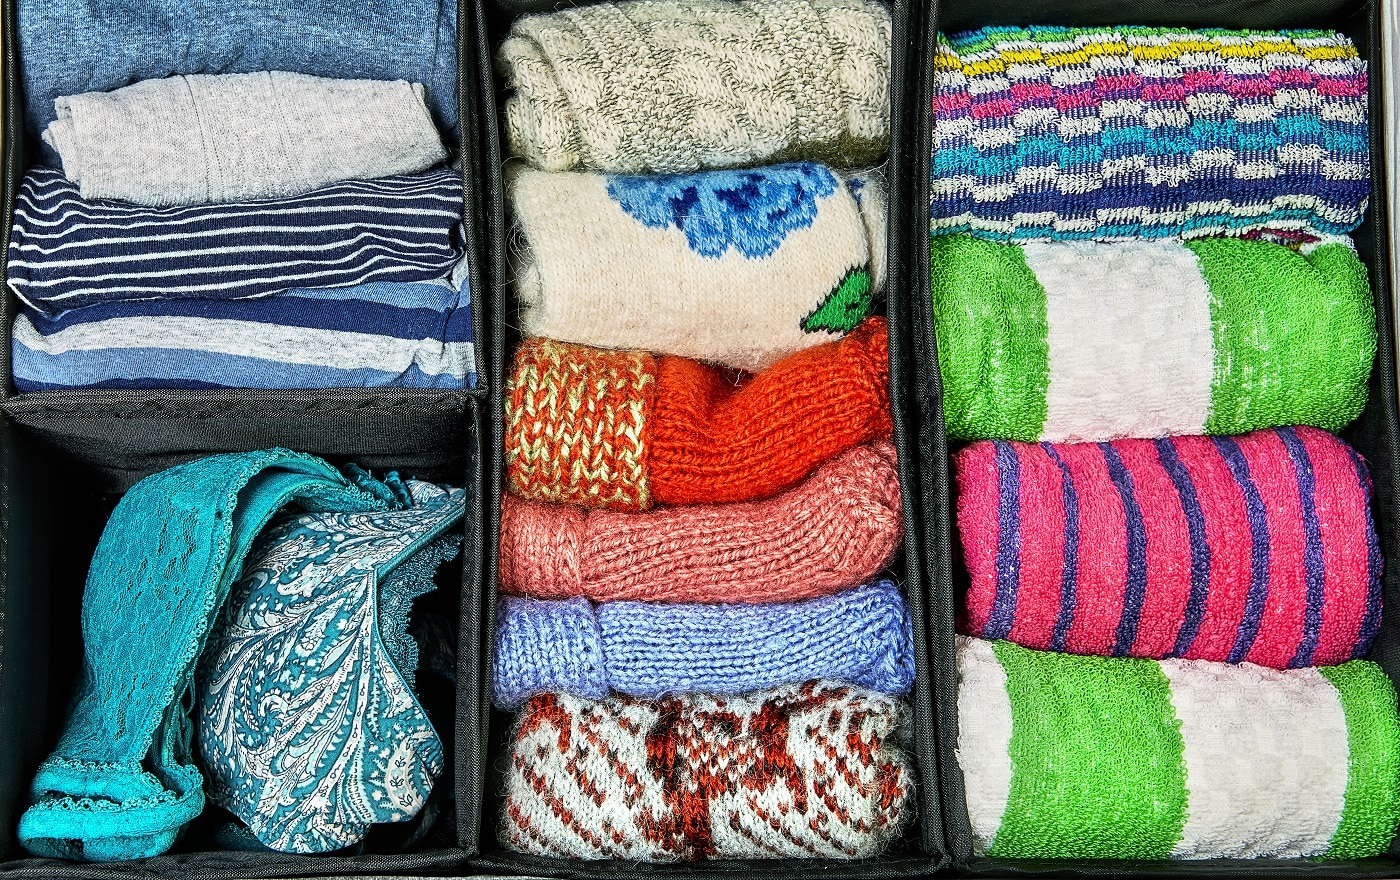 The fabric storage boxes they are organizers for dresser or closet which help divide up drawers and keep things separate.